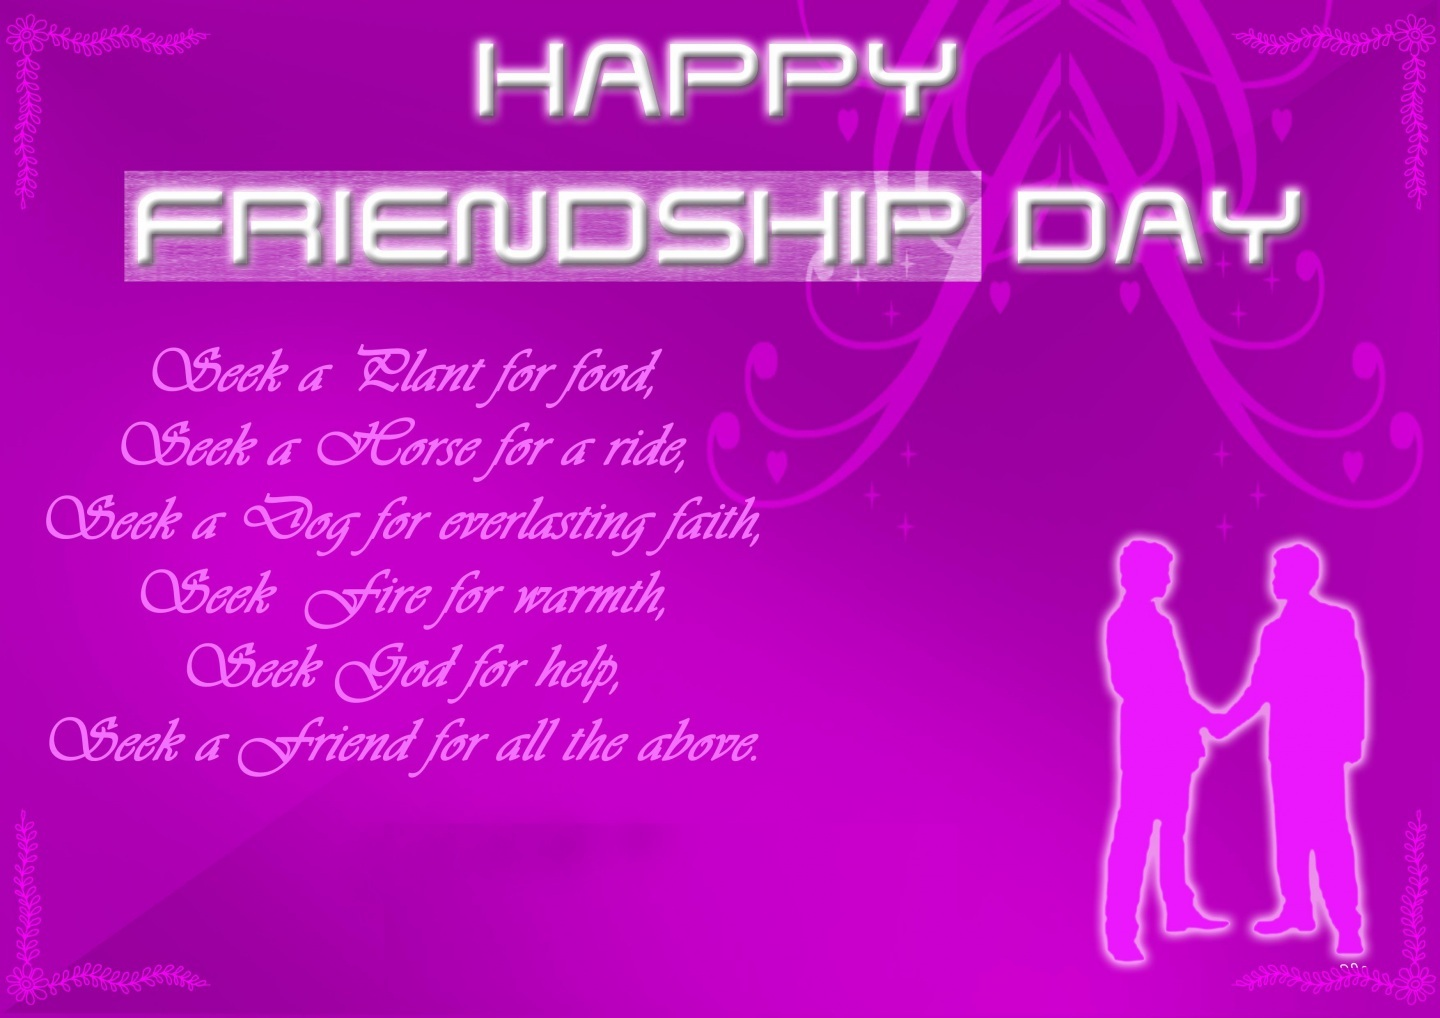 Quotes About Food And Friendship Love Terms Friendship Day Quotes